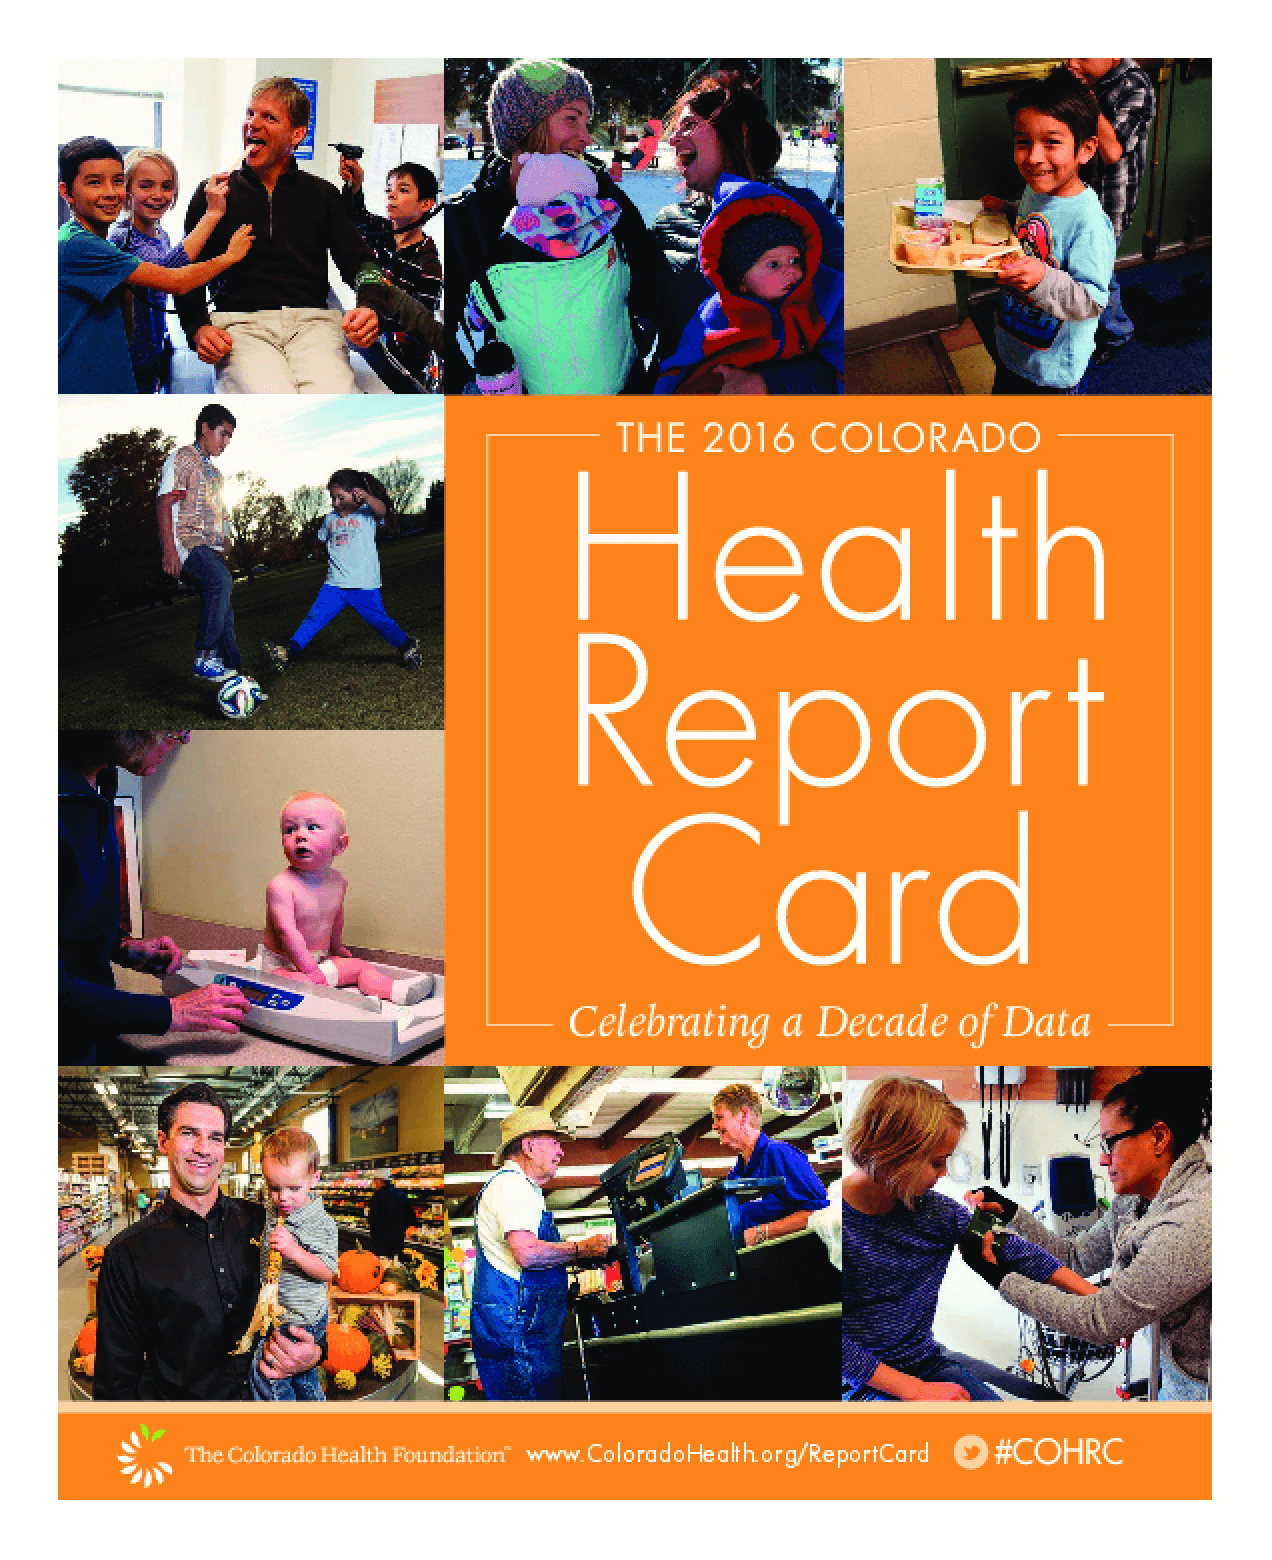 The 2016 Colorado Health Report Card: Celebrating a Decade of Data